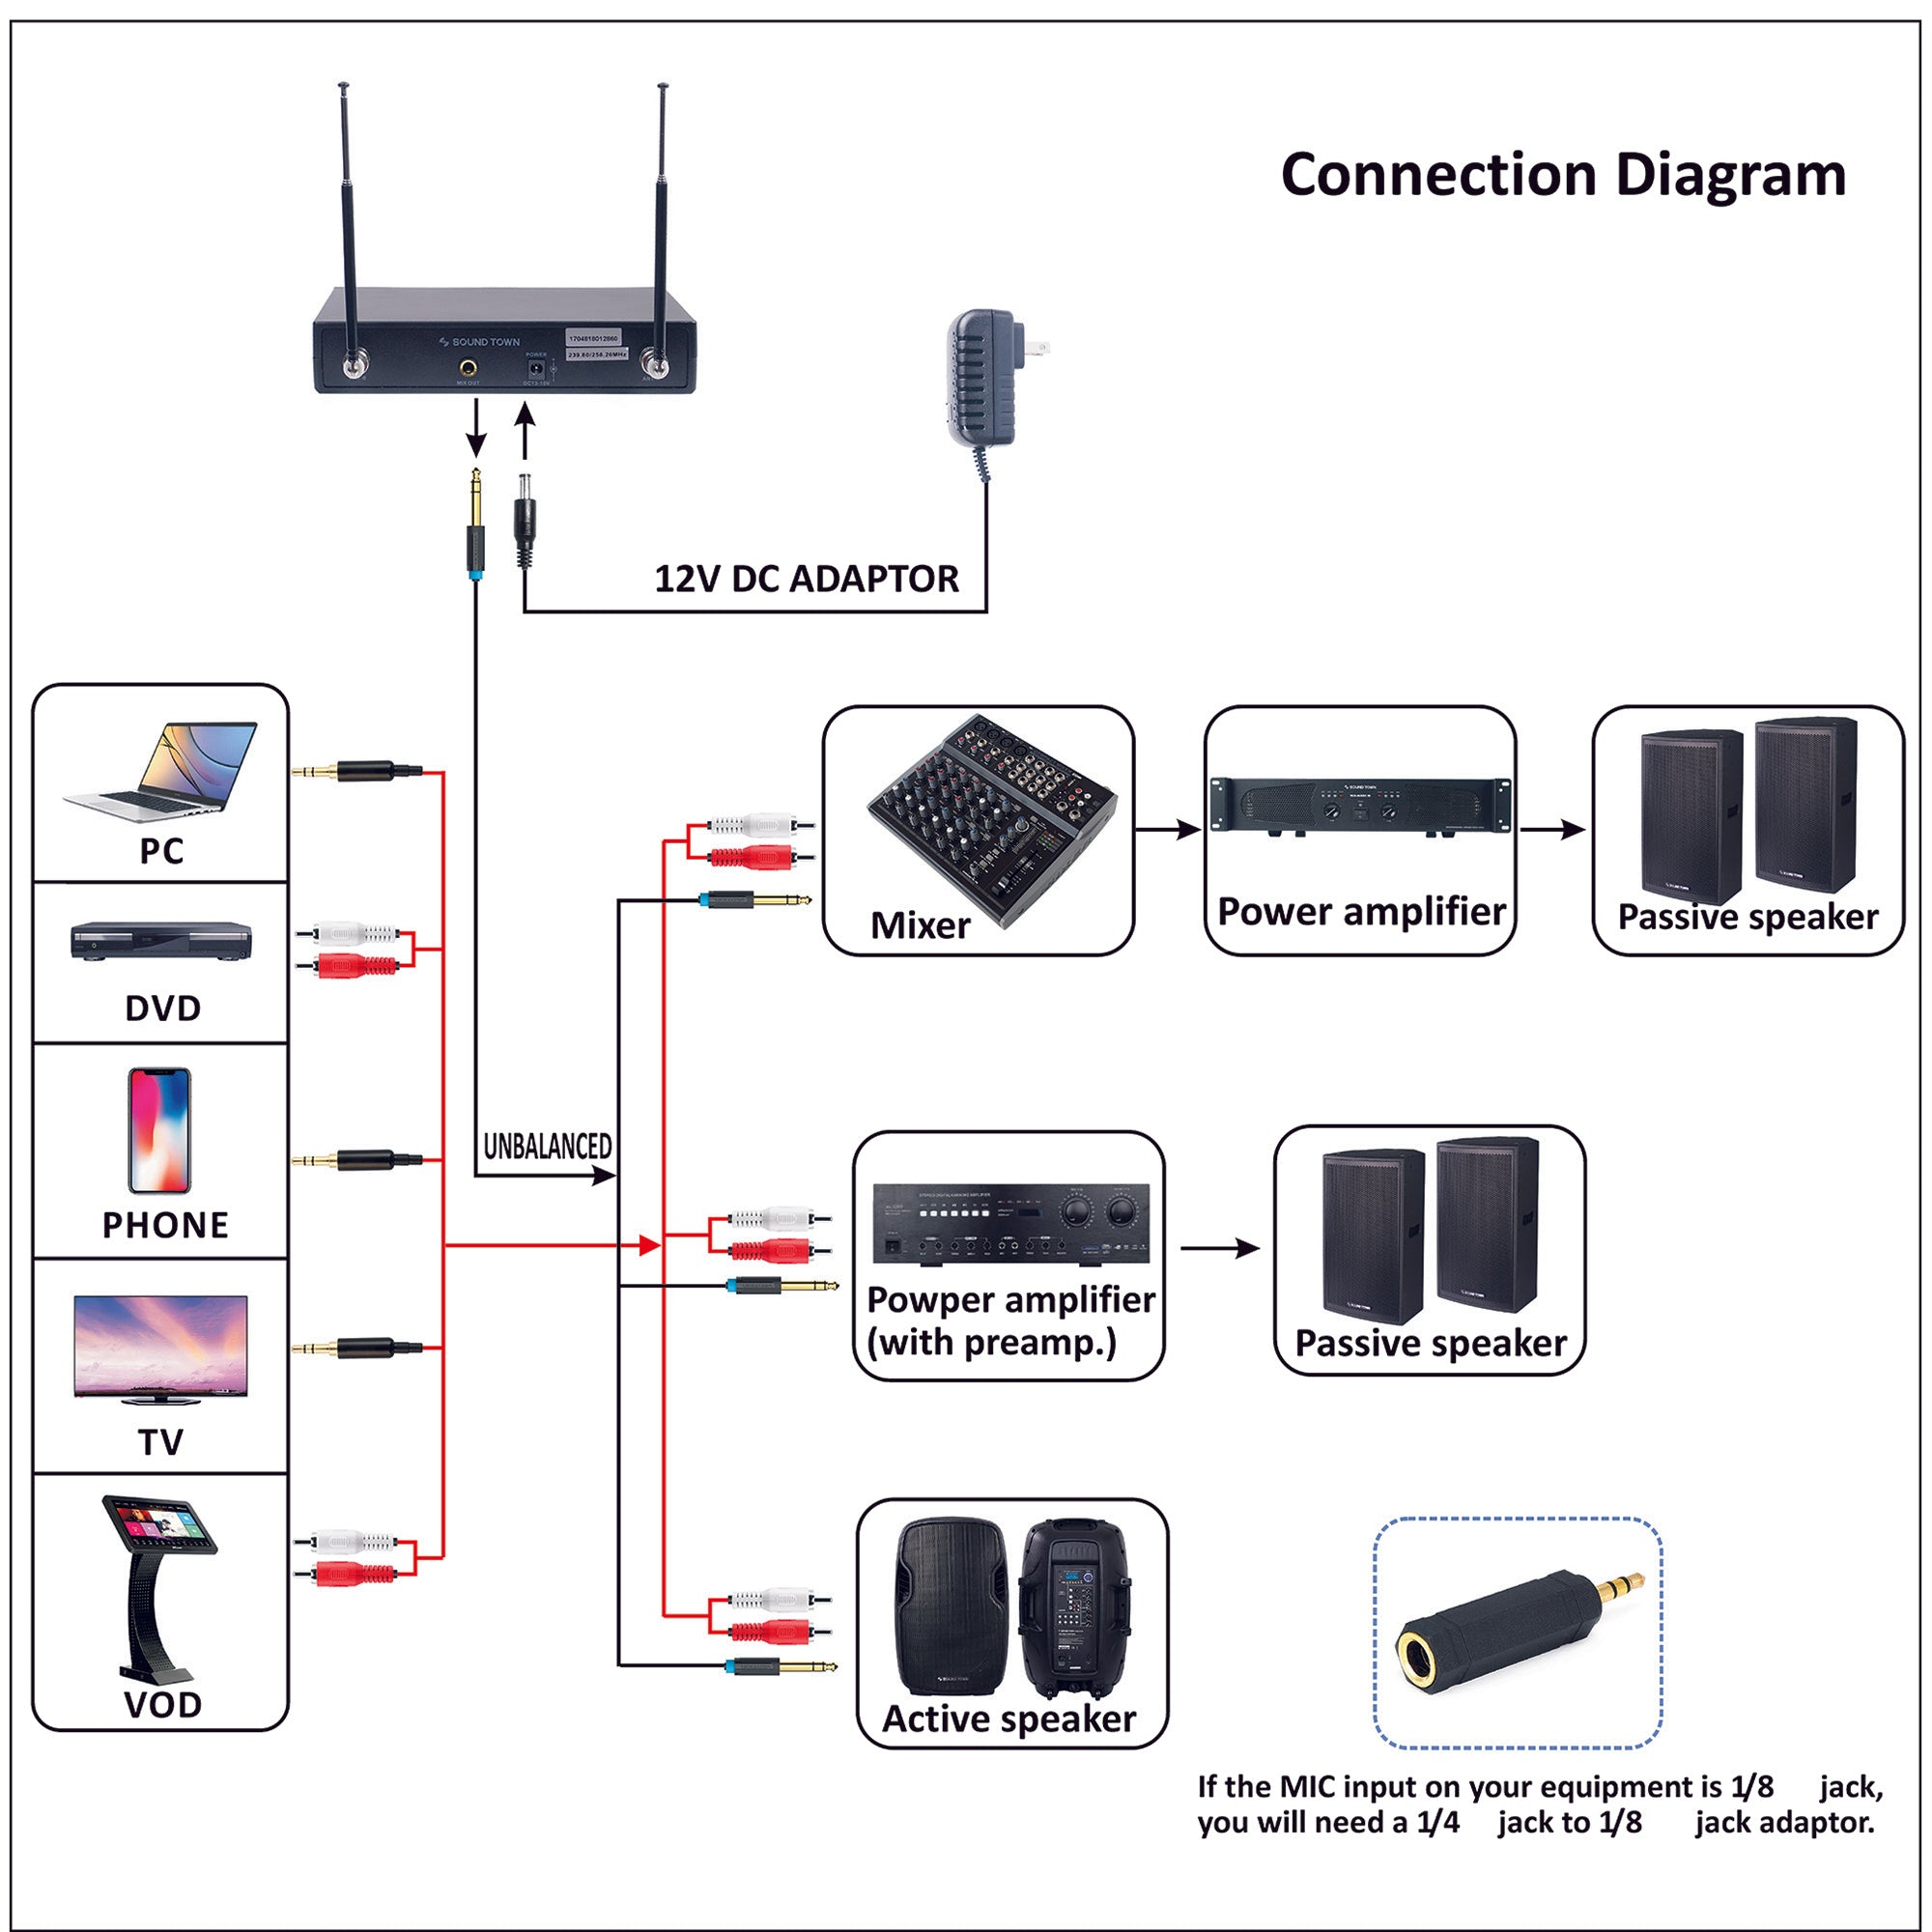 SWM10-U2 SERIES CONNECTION DIAGRAM: SWM10-U2HH SWM10-U2HB SWM10-U2BB How To Connect